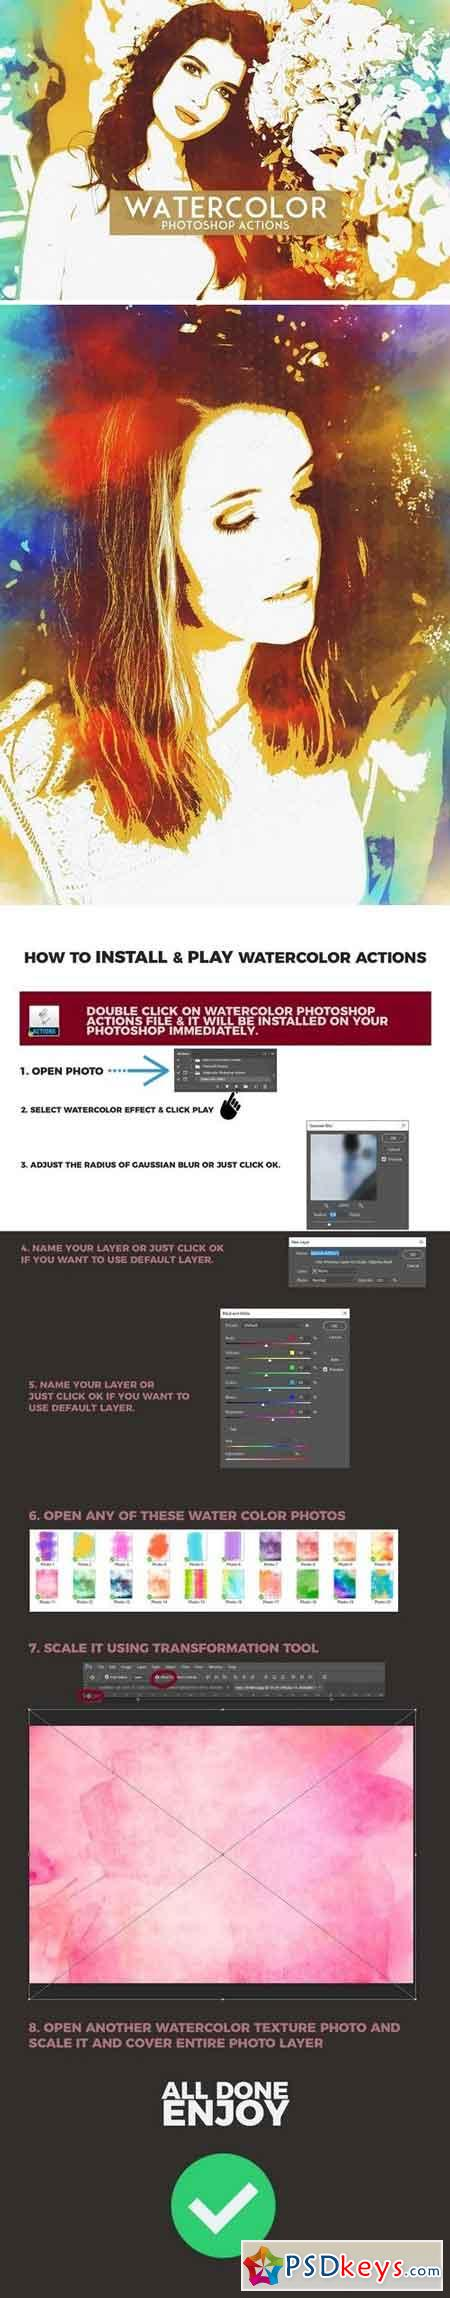 Watercolor Photoshop Actions 1201680